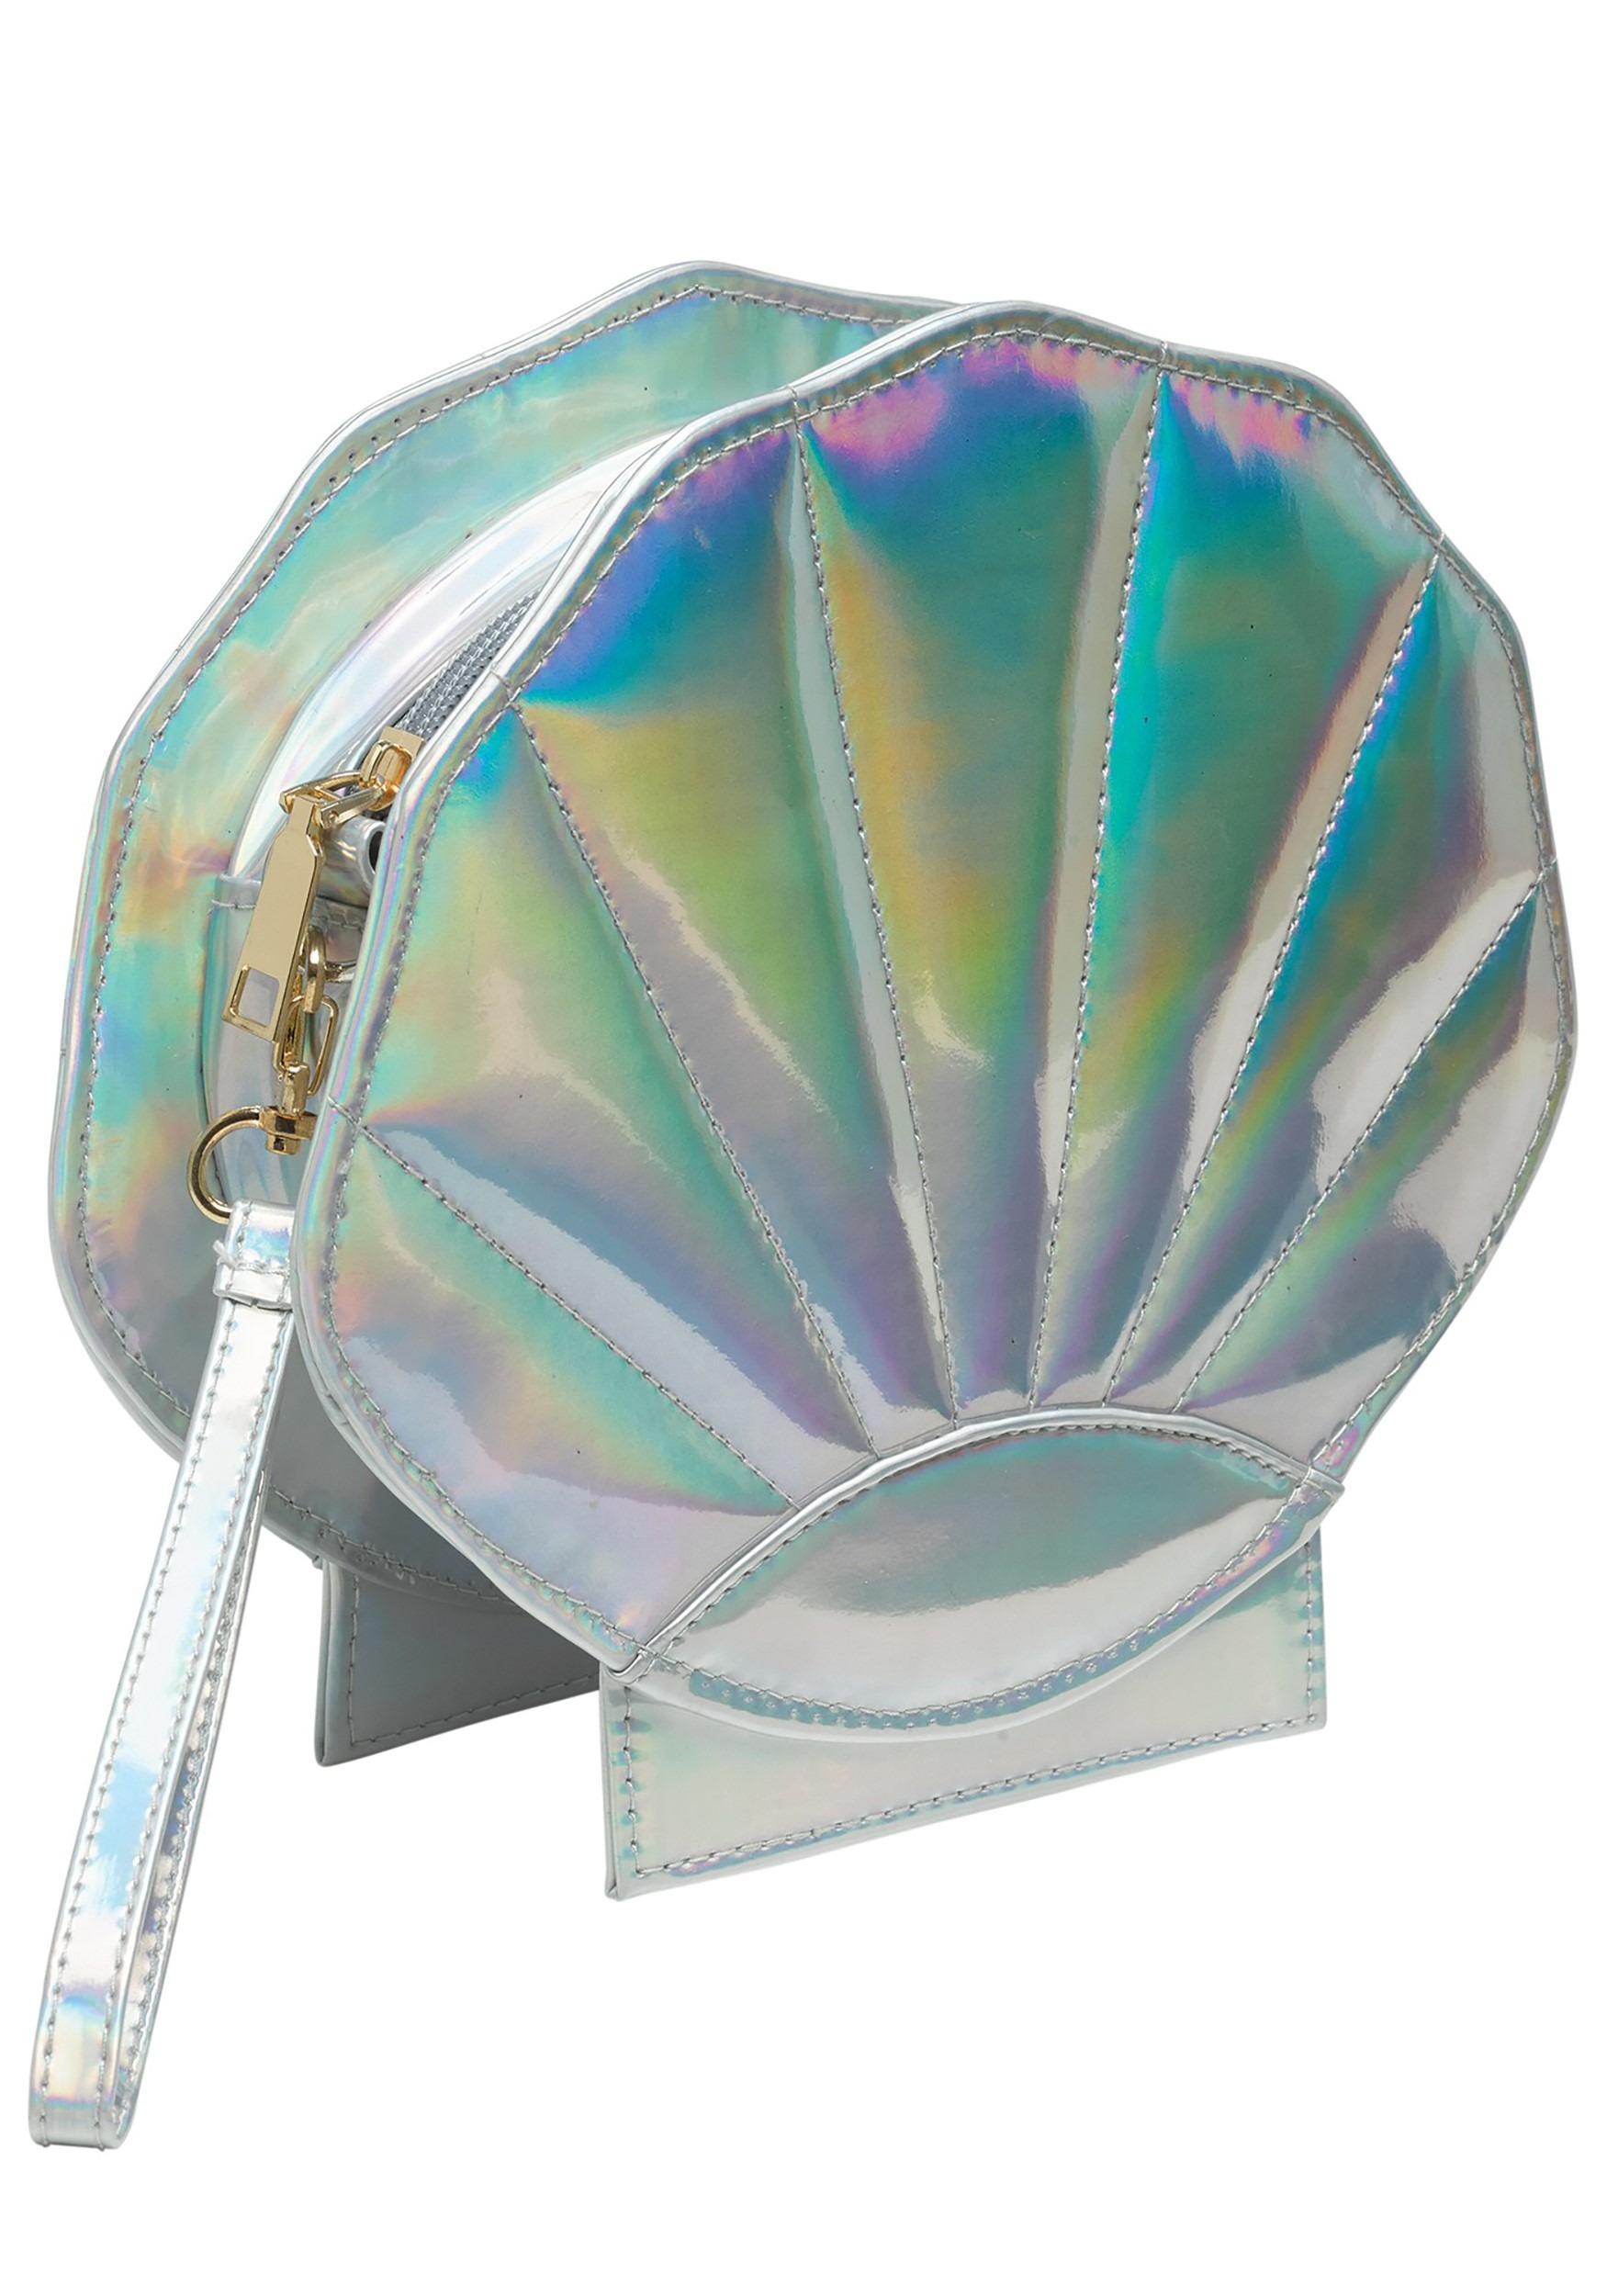 Mermaid Sea Shell Handbag